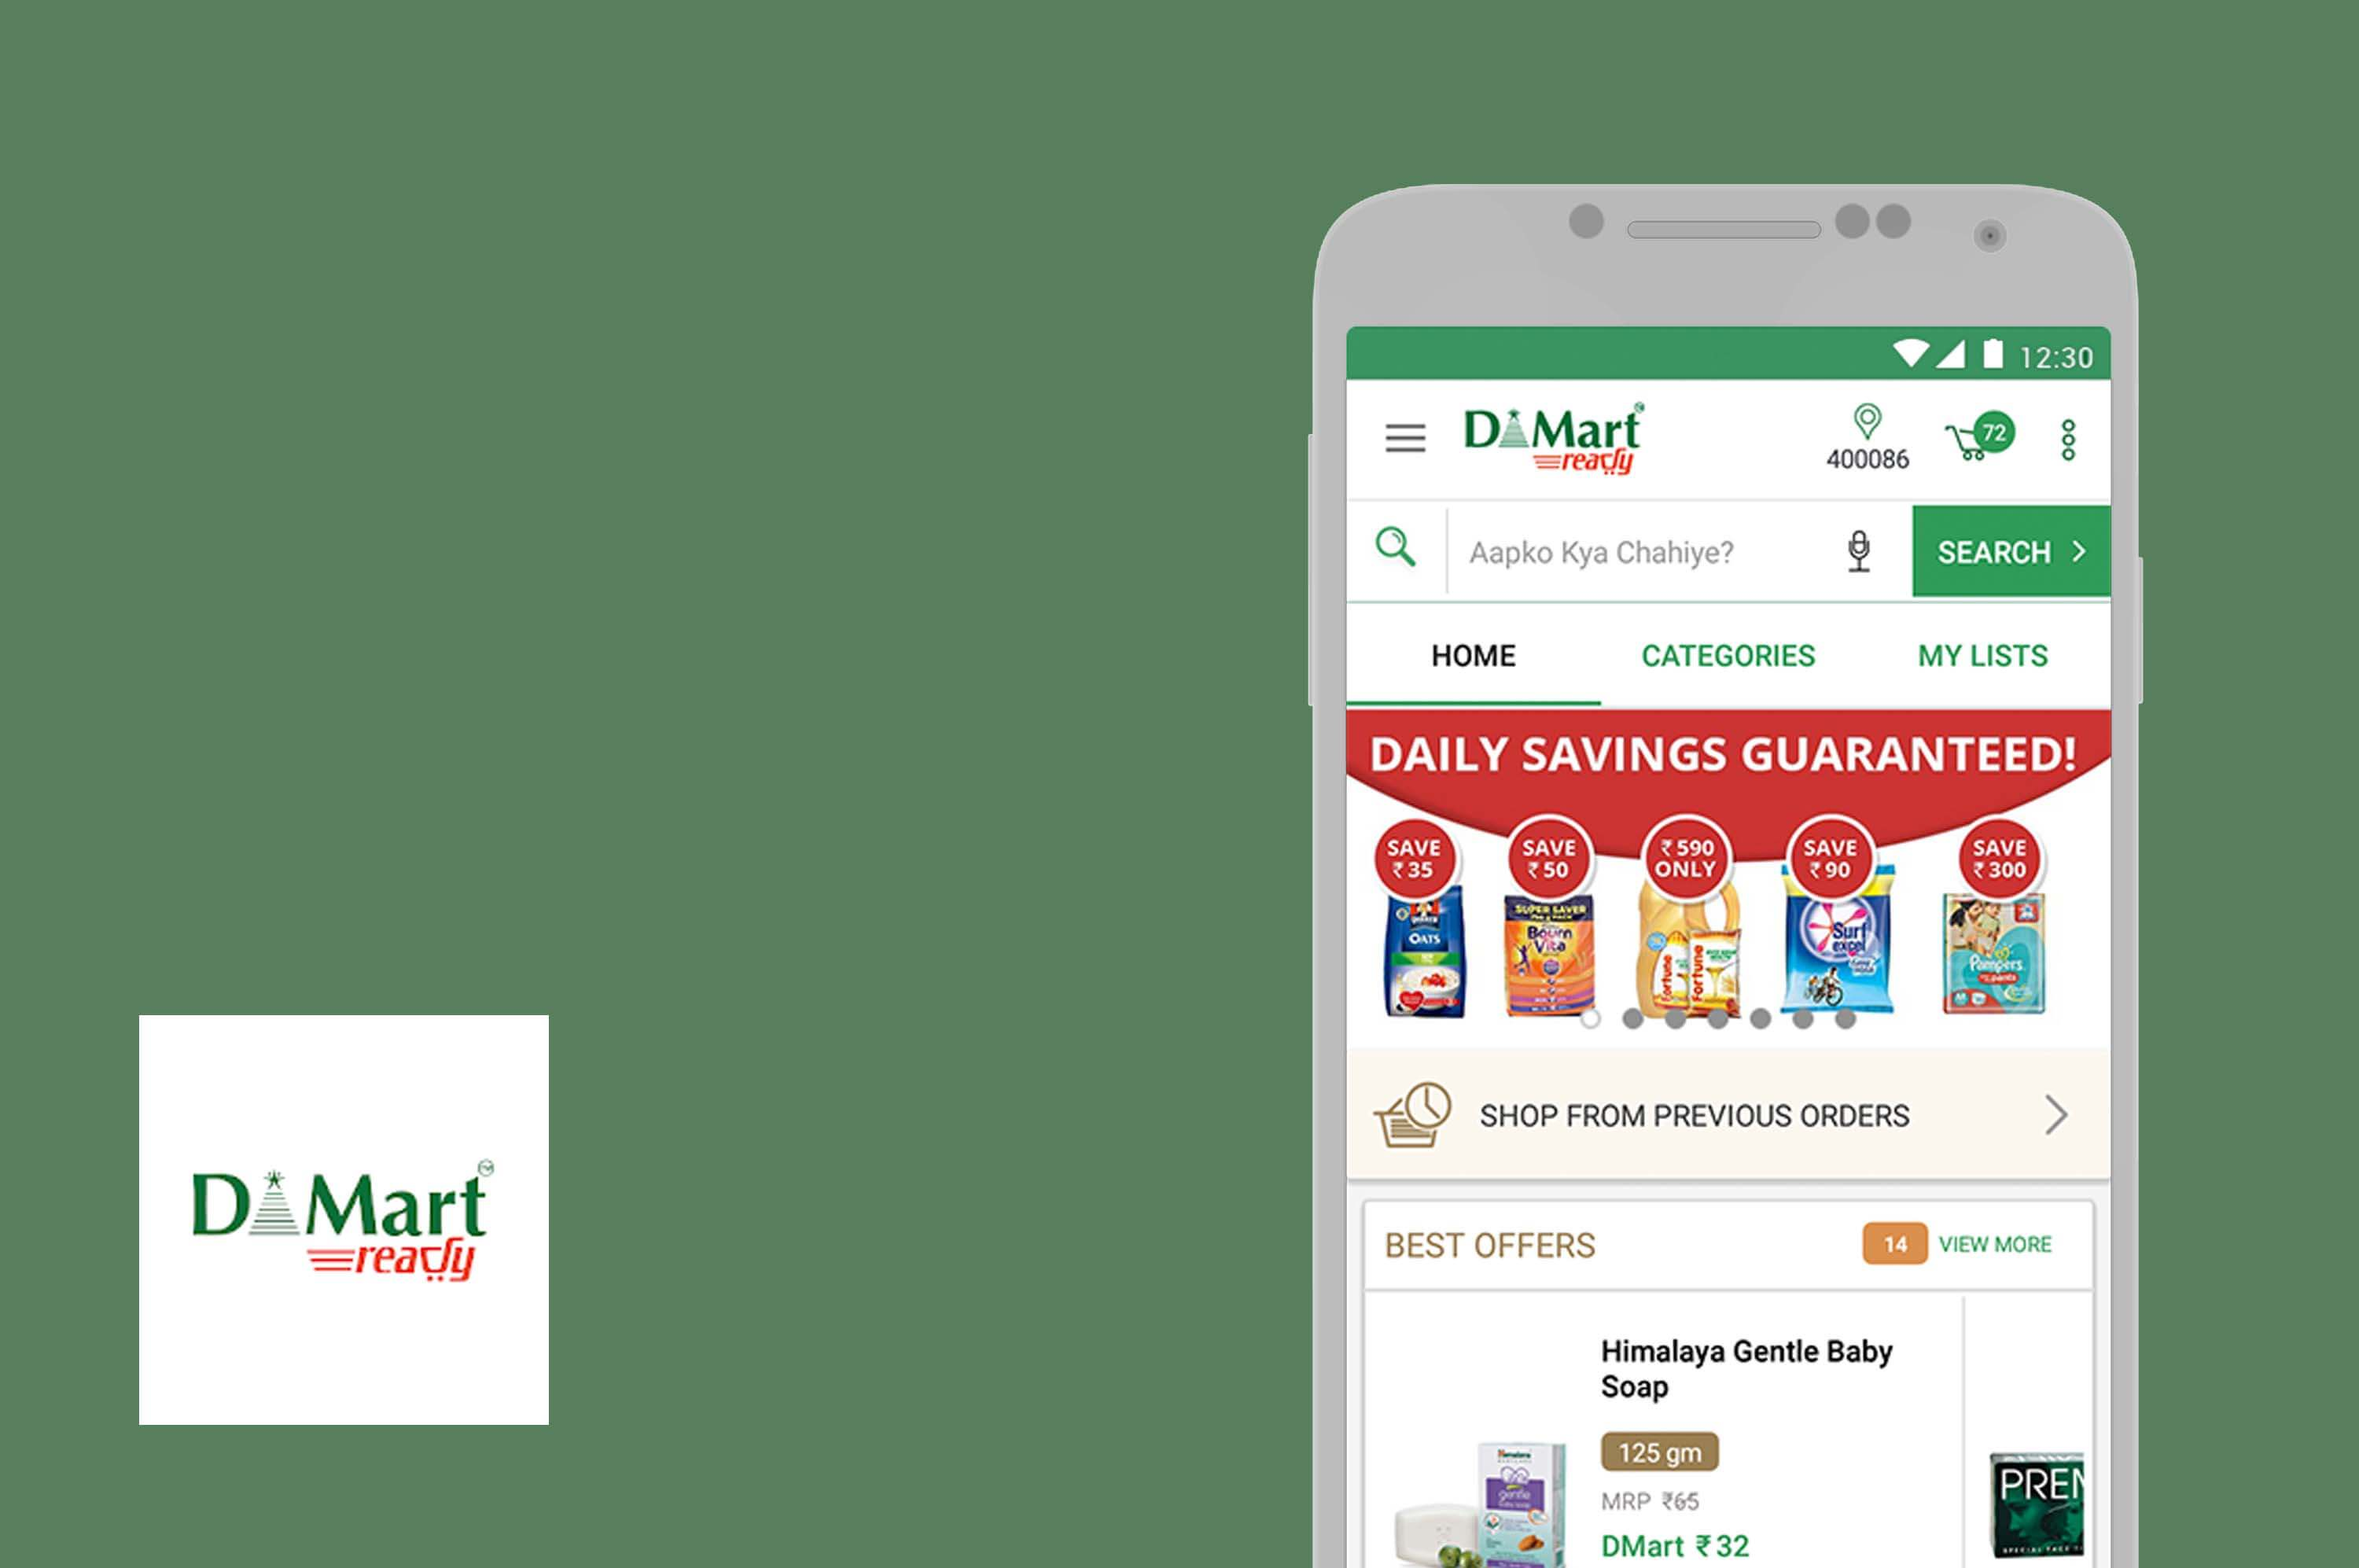 an android smartphone with dmart app opened